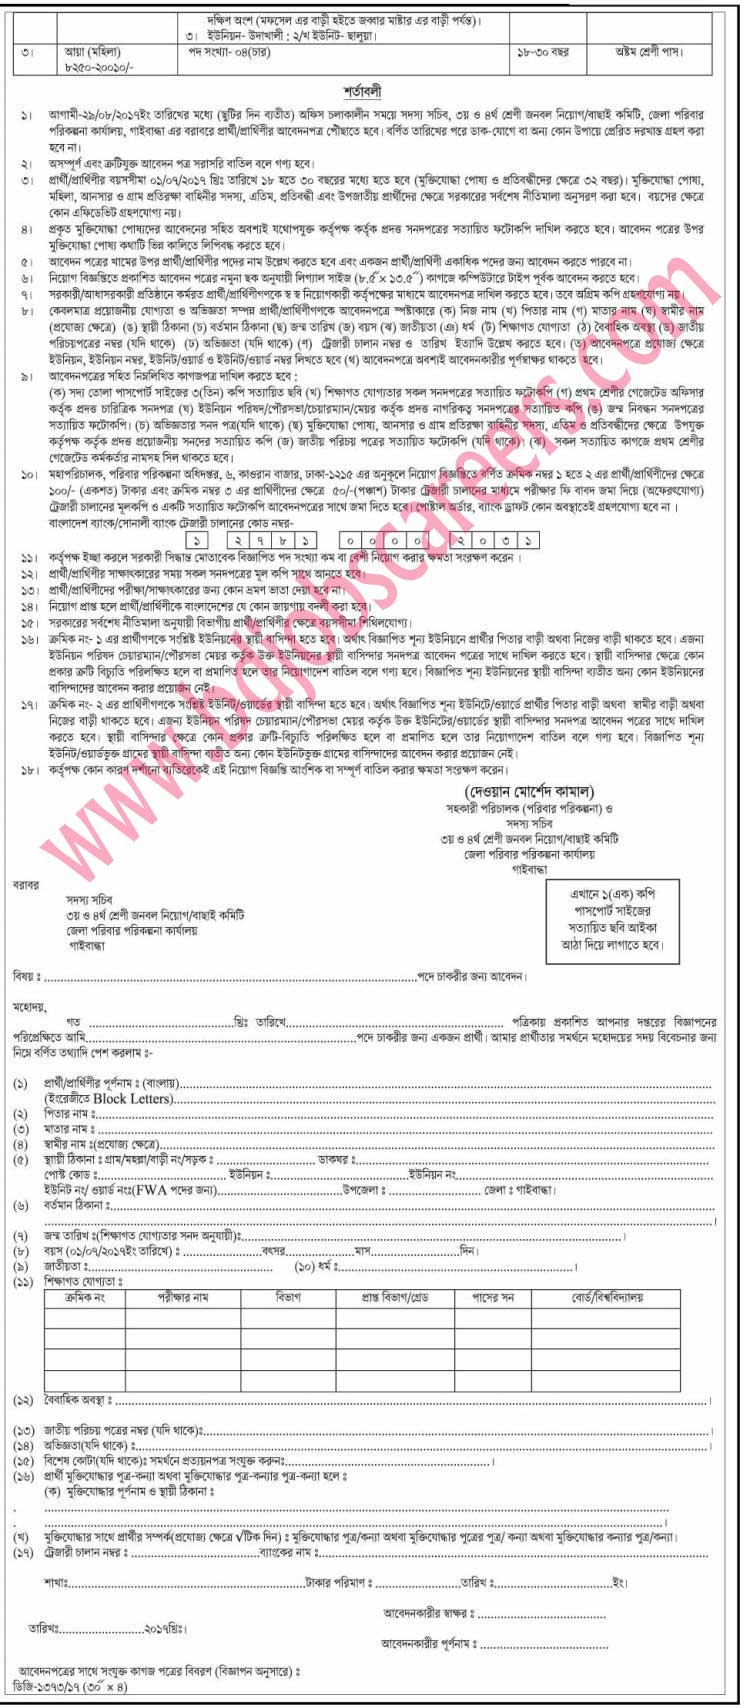 Gaibandha District Family Planning Office Job Circular 2017